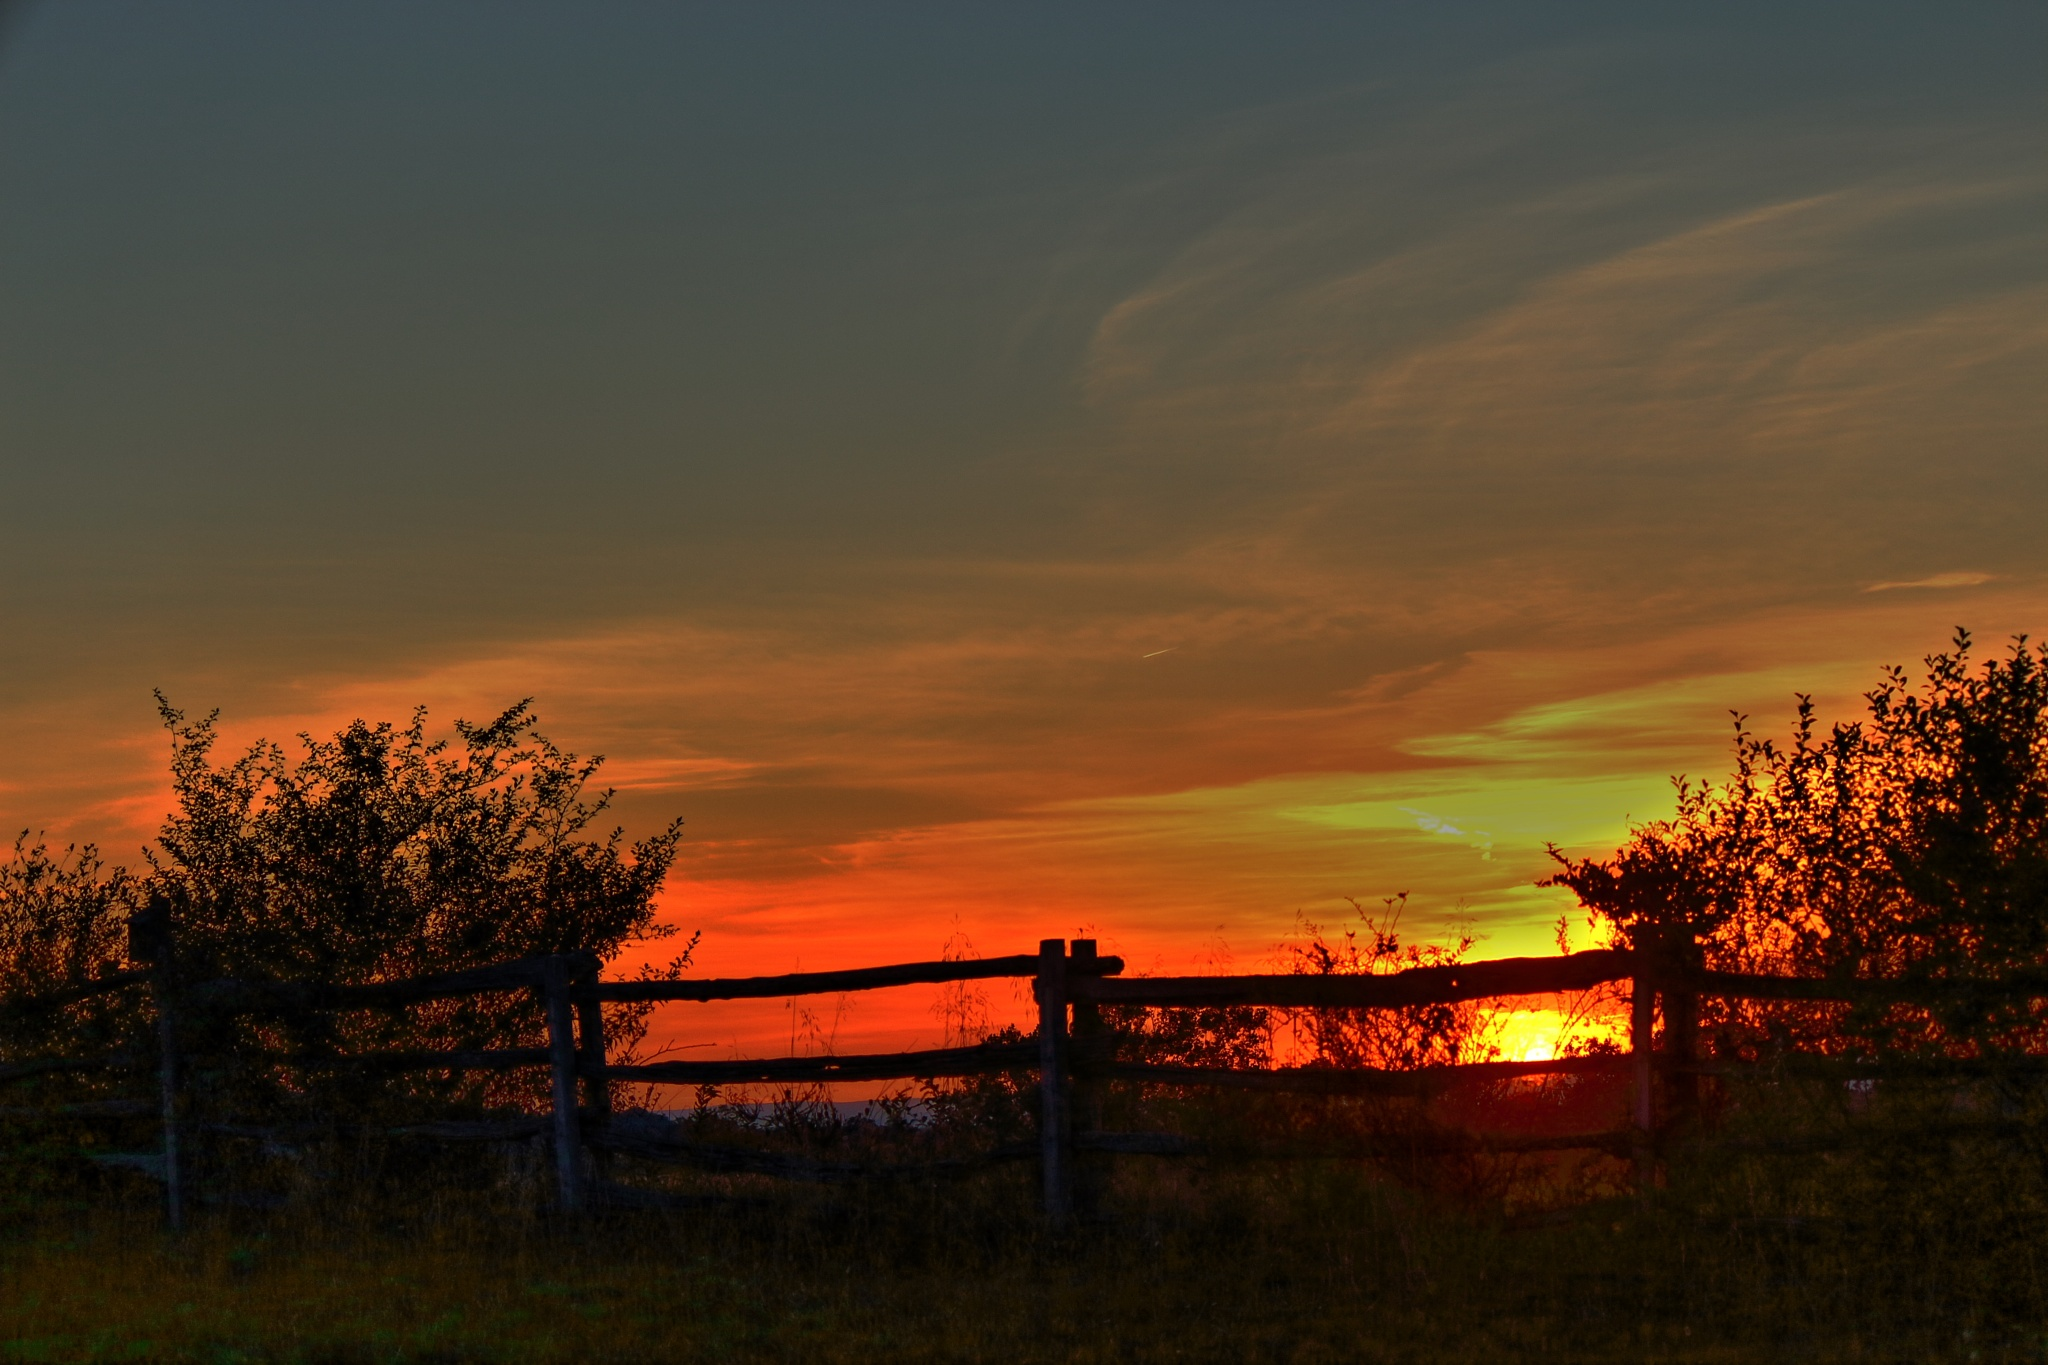 Sunset in the country by Clark L. Roberts